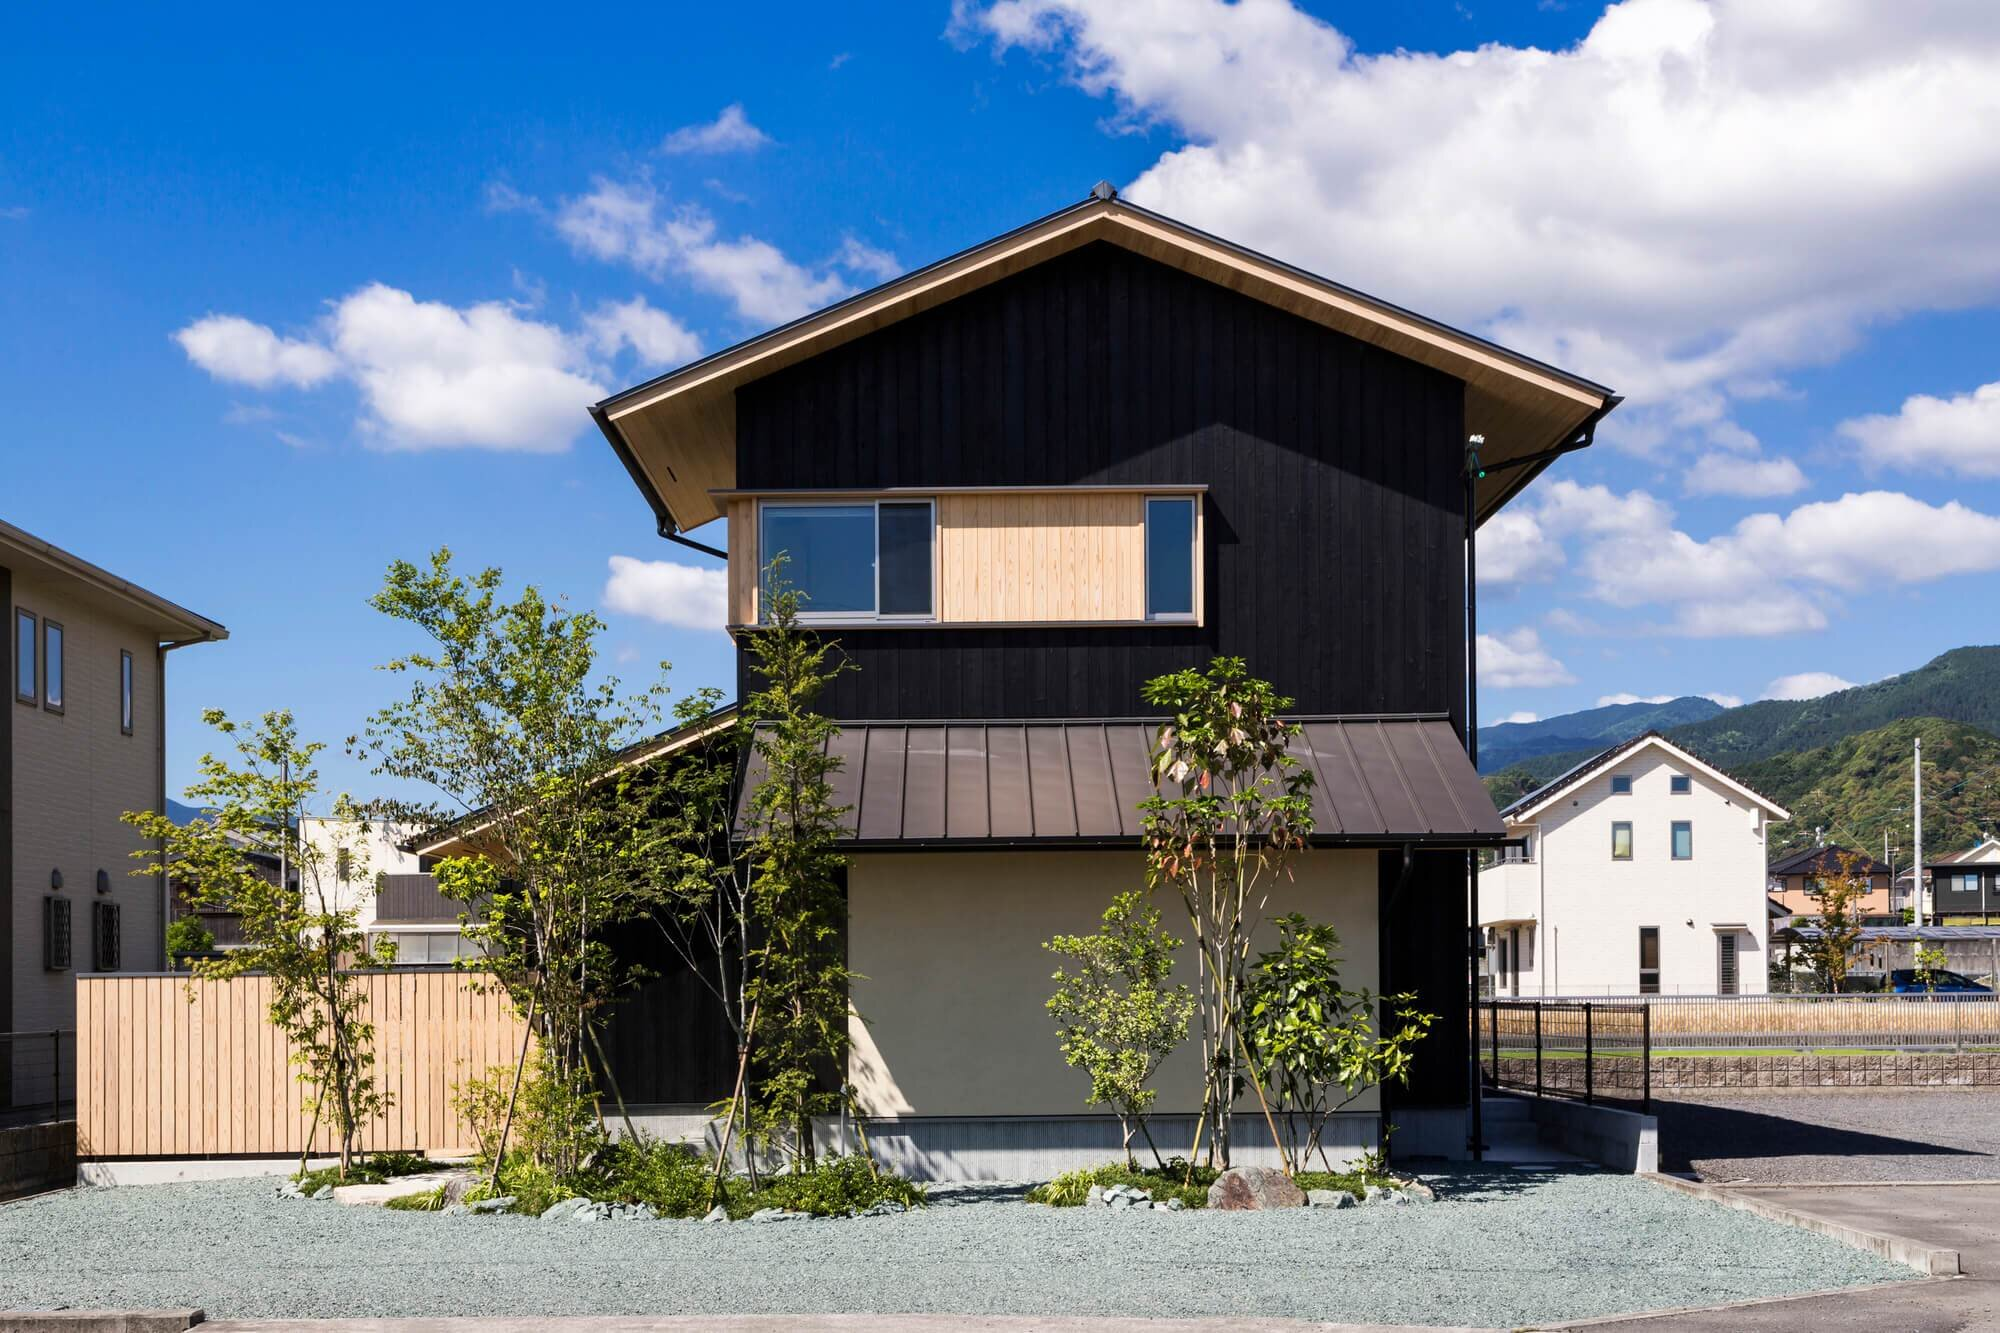 Takashi Okuno Designs A House That Allows The Owners To